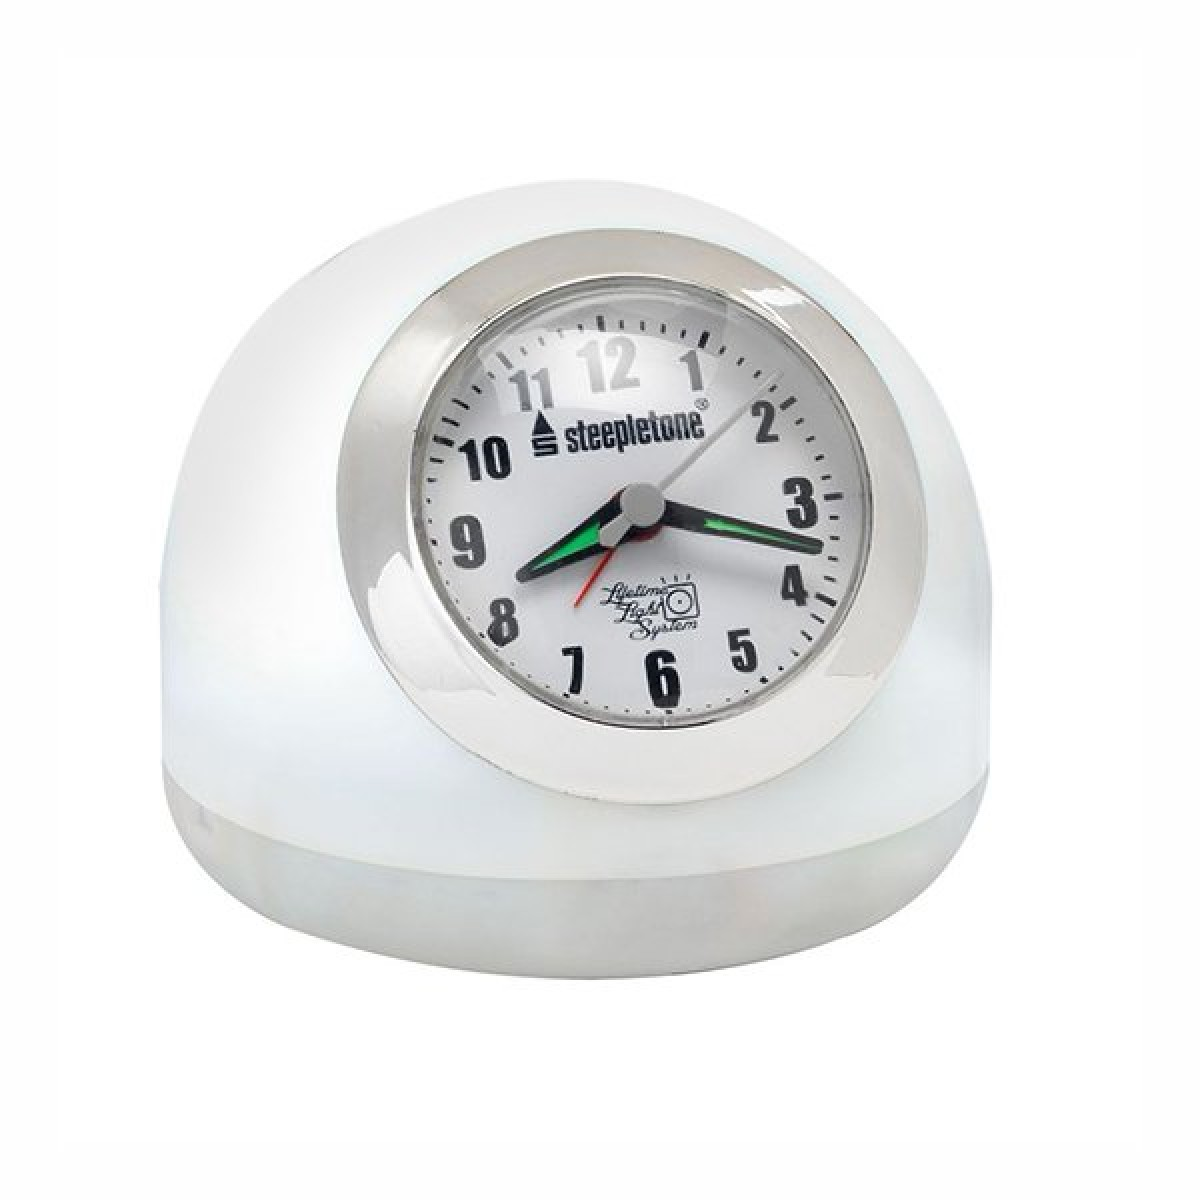 Lot 16170 - V Brand New LED Touch Controlled Clock Alarm With Radio & Touch Control White & Mood Lighting (Radio